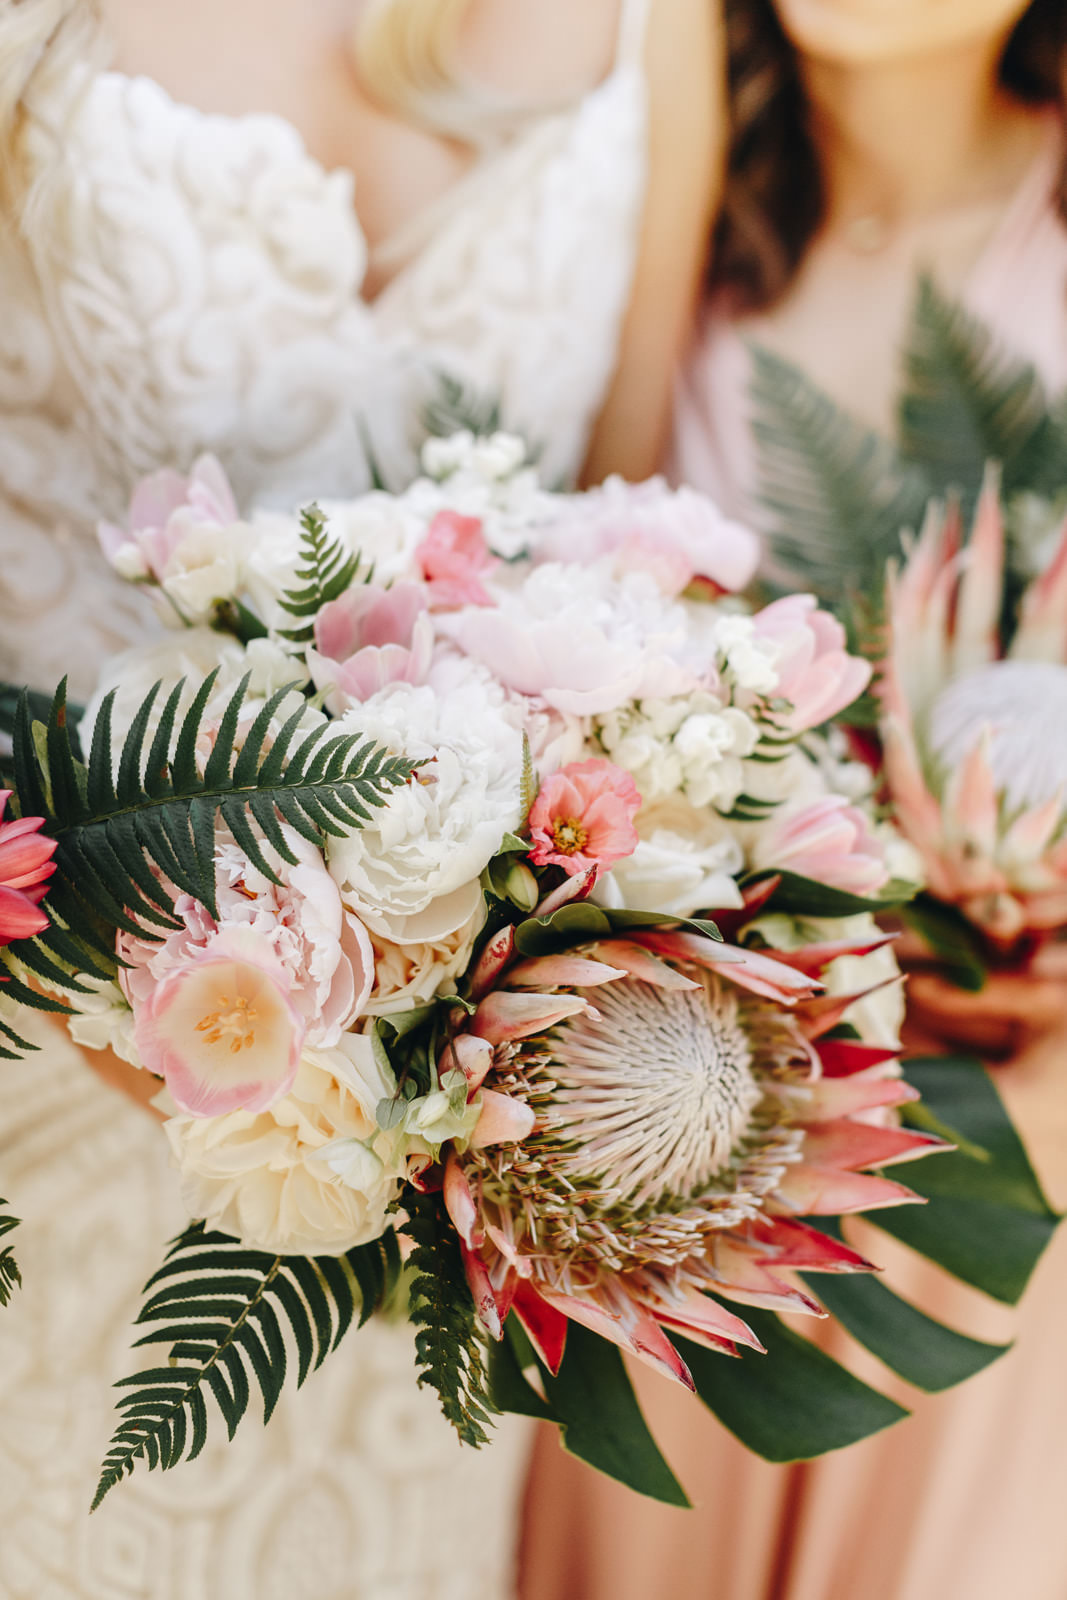 Pink, blush, and greenery wedding bouquet with greenery fern accents.